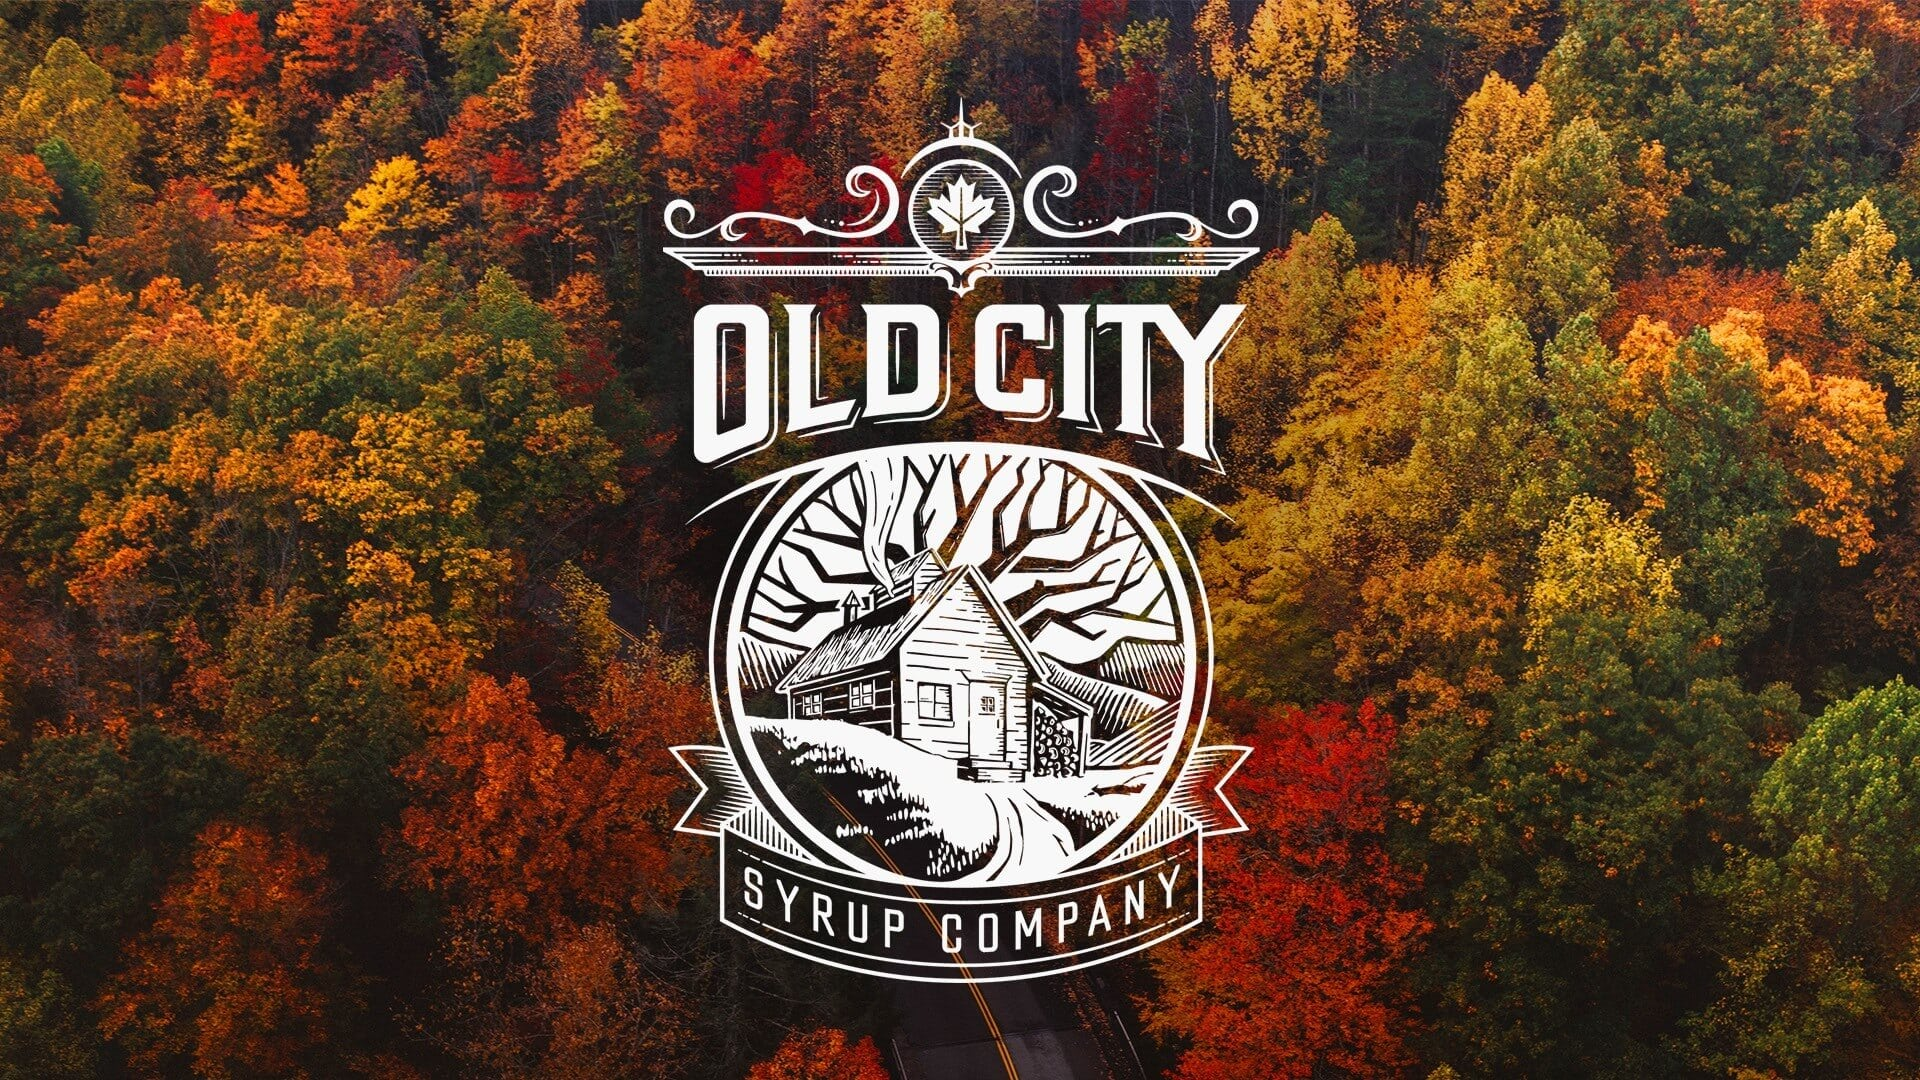 Old City Syrup Company Logo on top of colorful trees